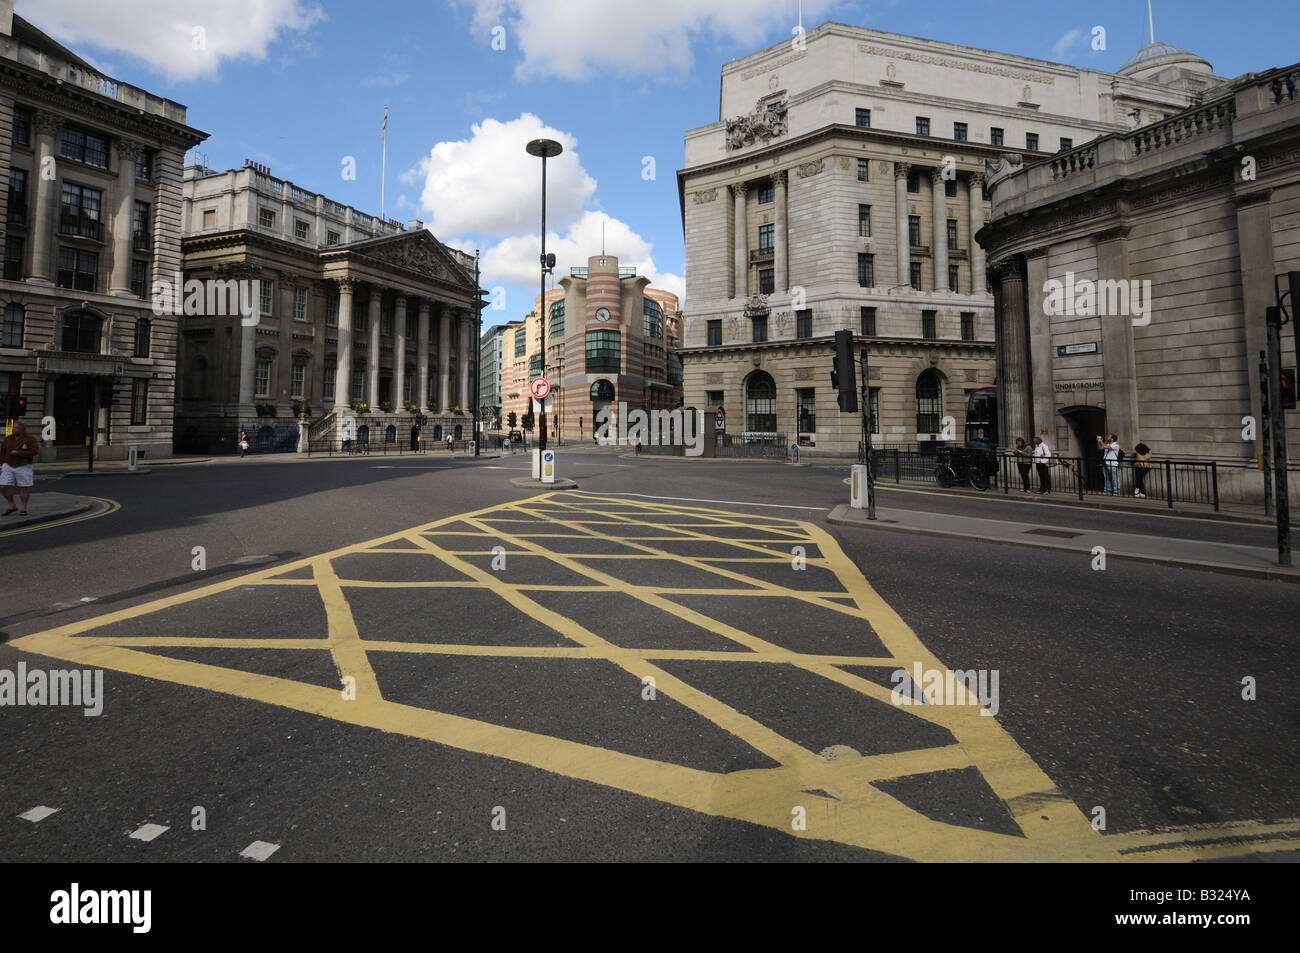 Mansion House and road junction including box junction from Bank of England city of London - Stock Image